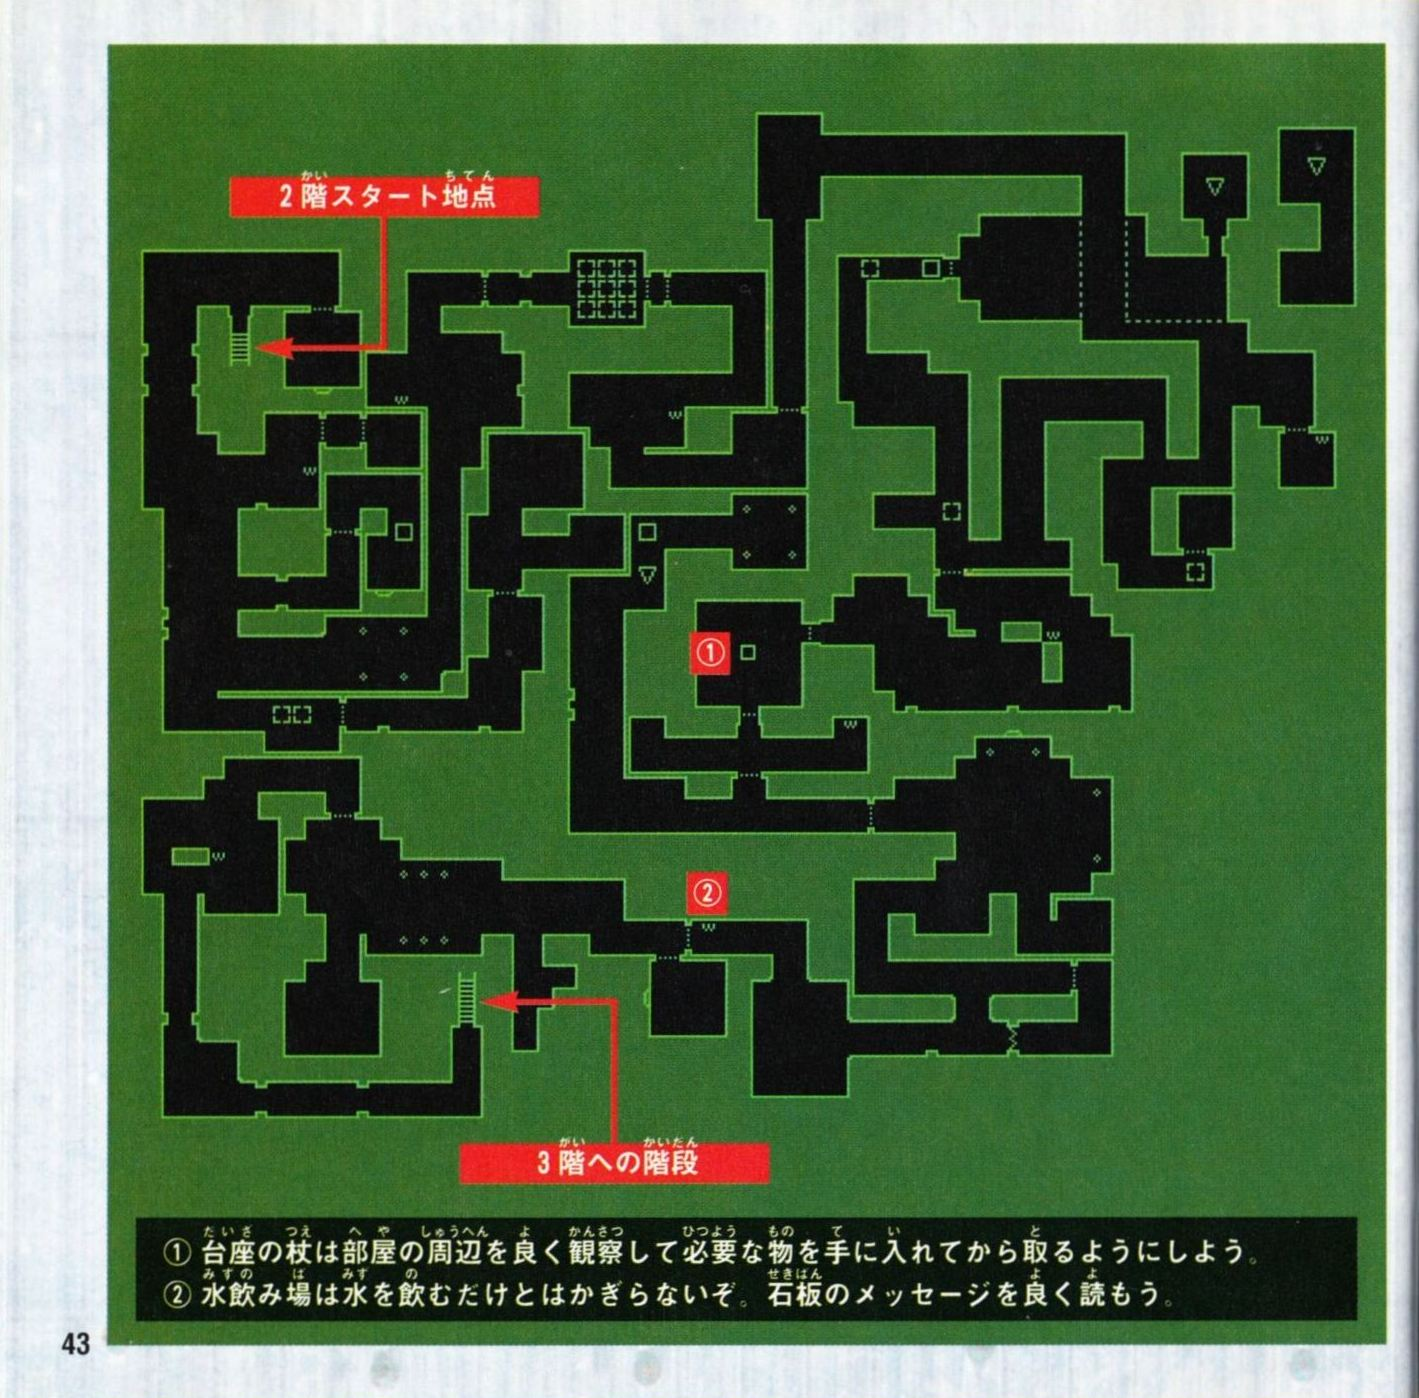 Game - Dungeon Master Nexus - JP - Sega Saturn - Booklet - Page 044 - Scan